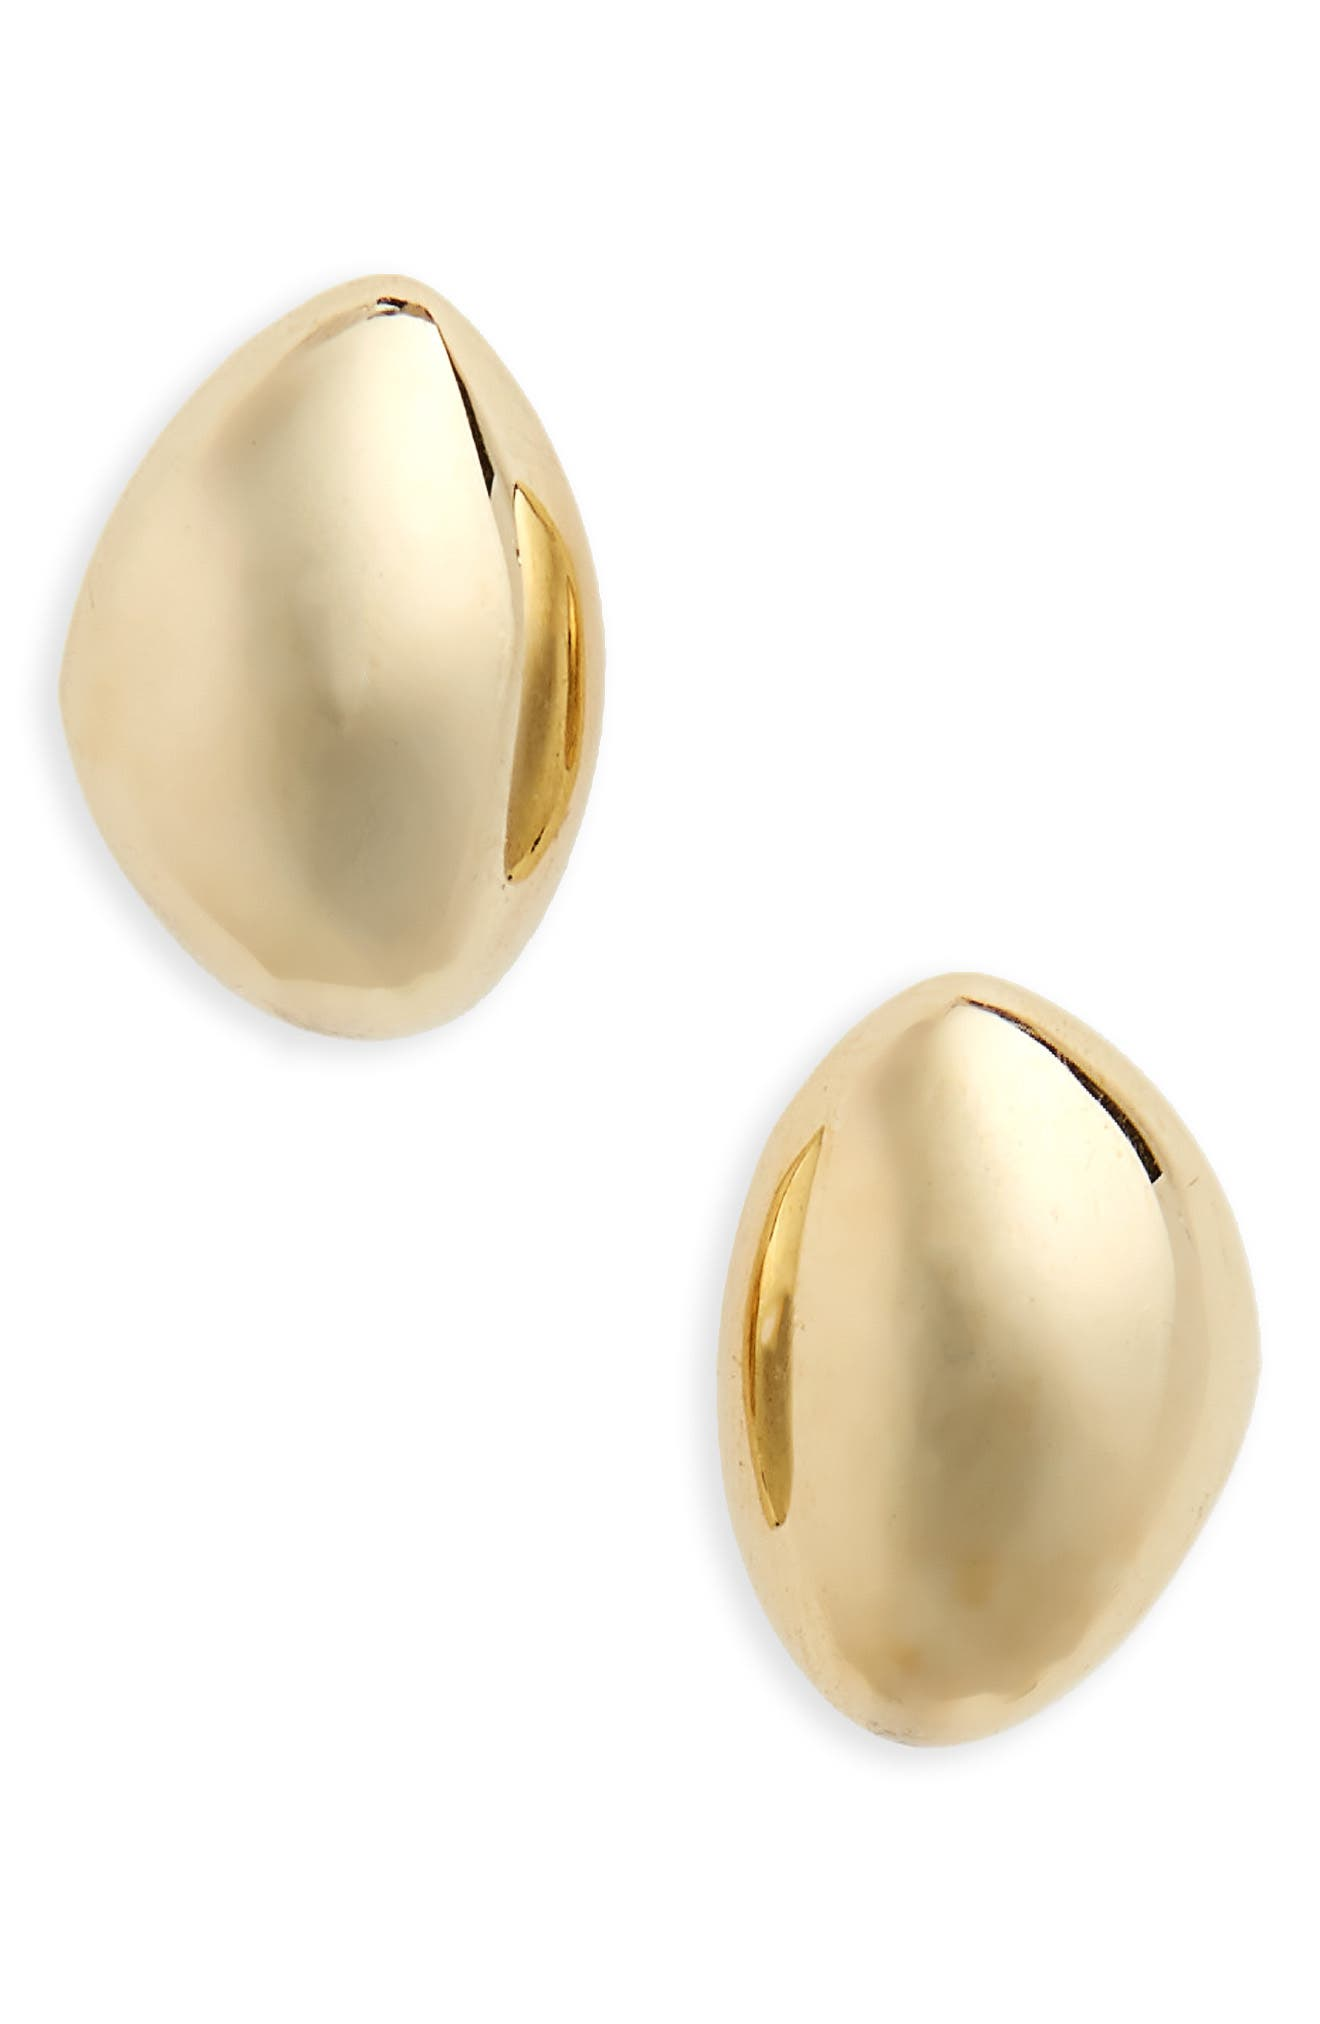 Soko Sabi Stud Earrings